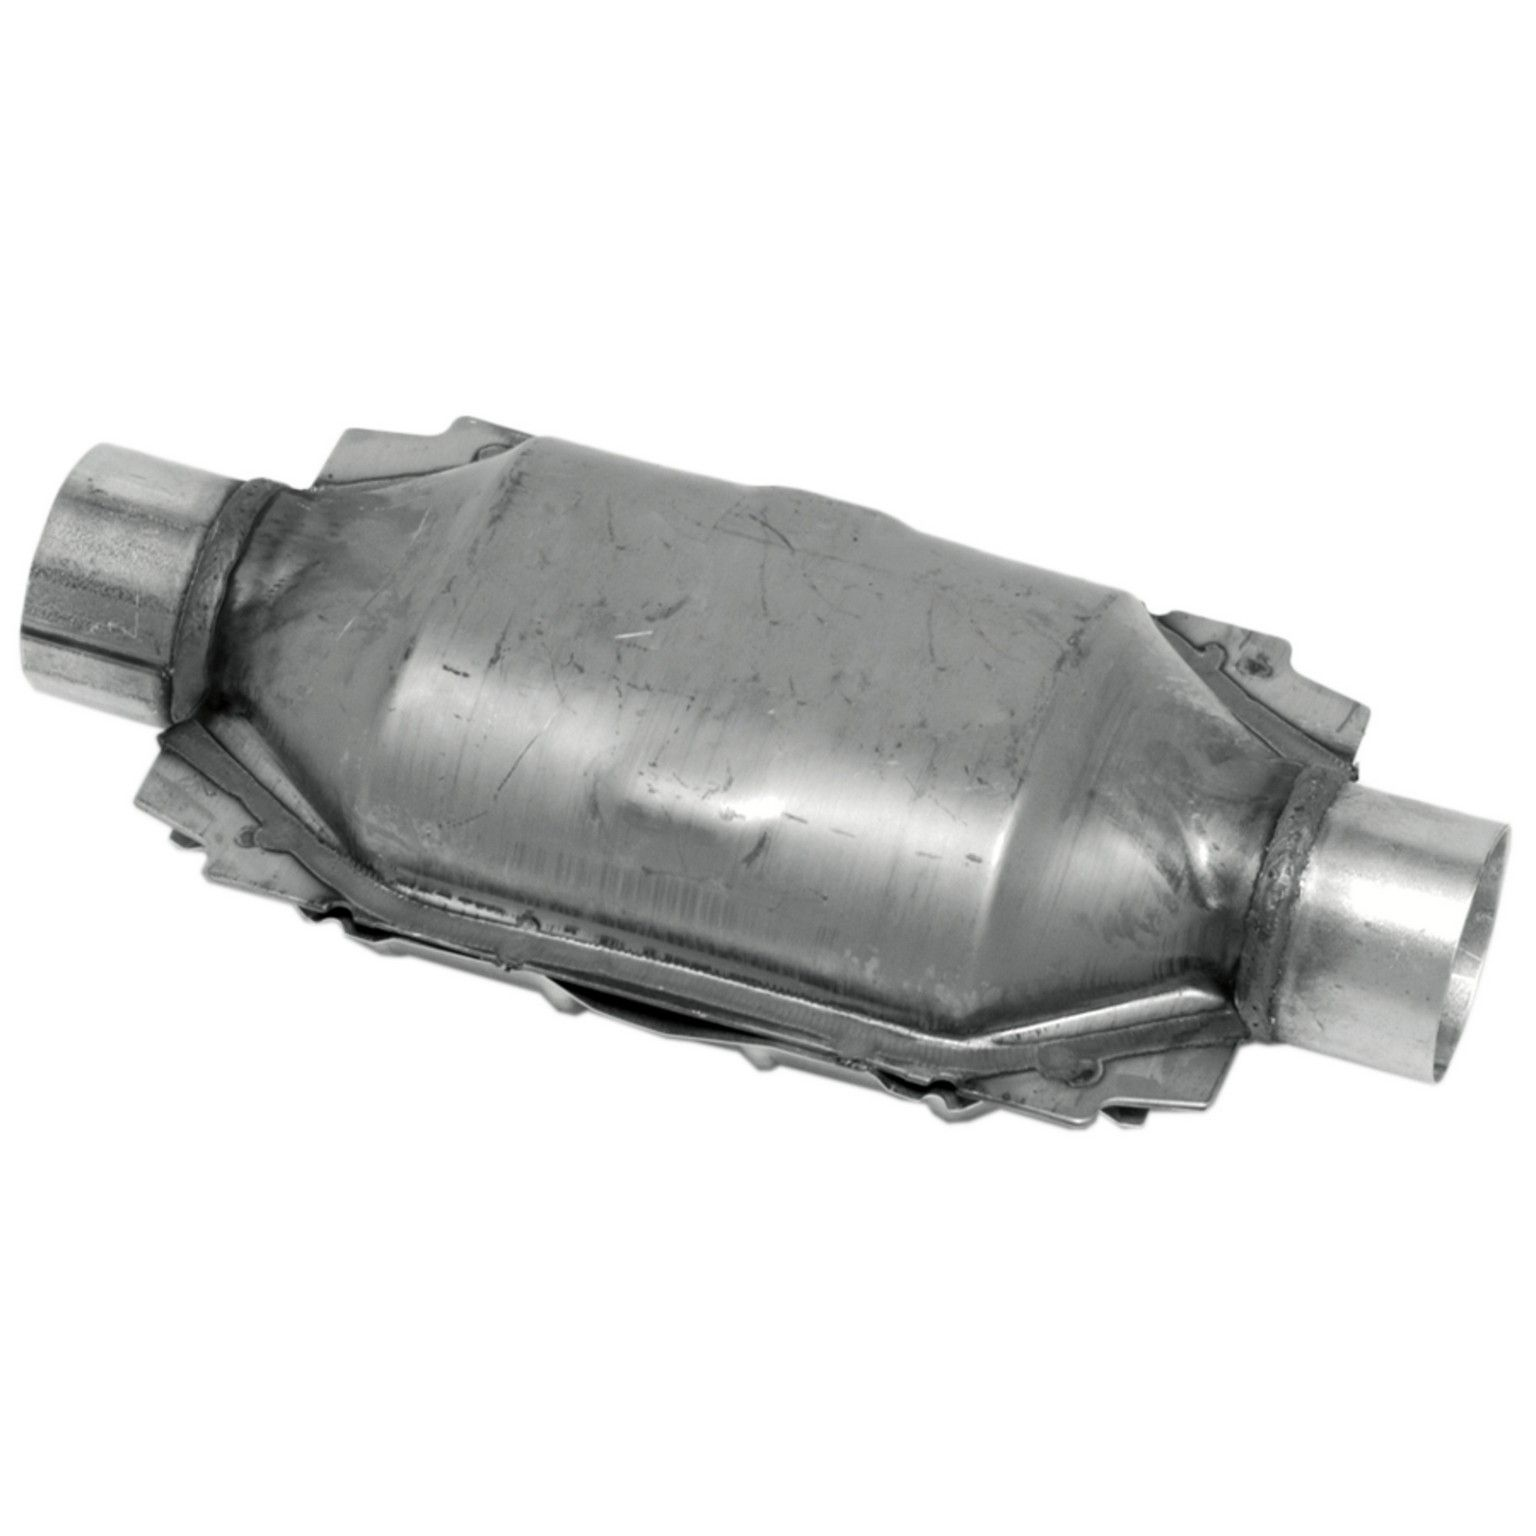 2003 KIA Rio Catalytic Converter Na 4 Cyl 16l Walker 93236 Fits Fed Calif Emiss Models Not Legal For Sale In The State Of California: 2003 KIA Rio Catalytic Converter At Woreks.co